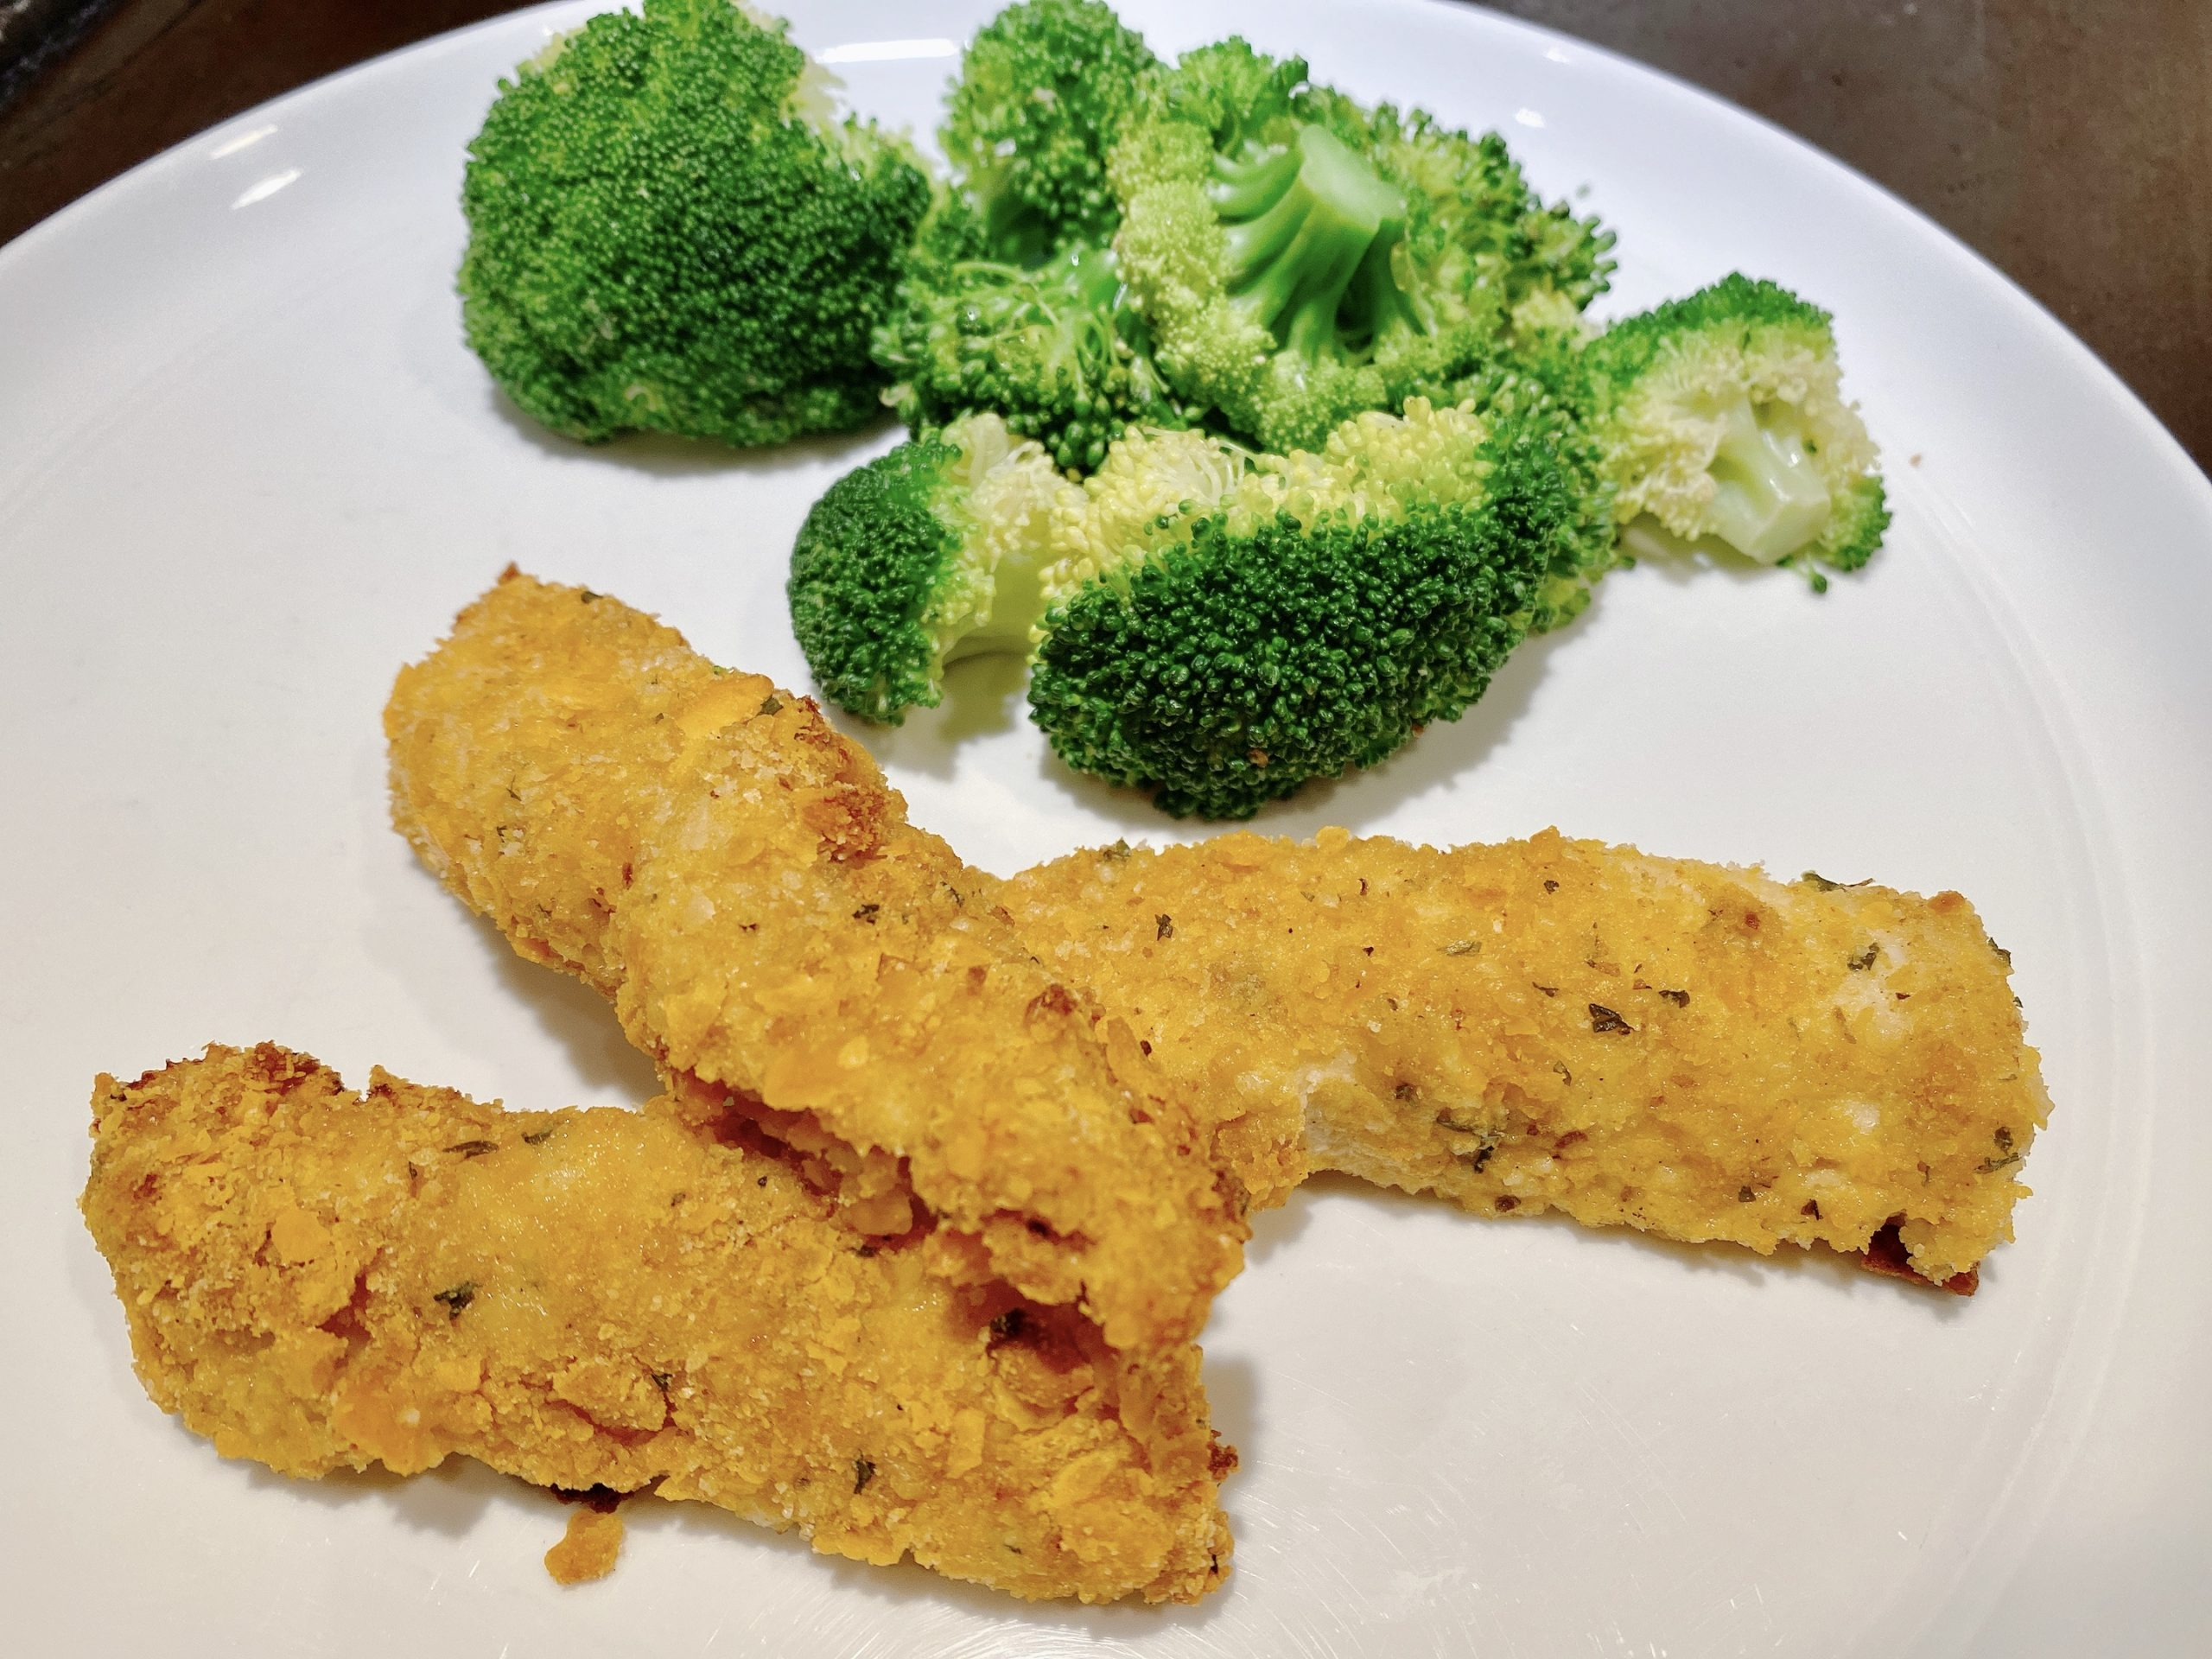 Homemade Crispy Chicken Tenders on dinner plate with steamed broccoli crowns